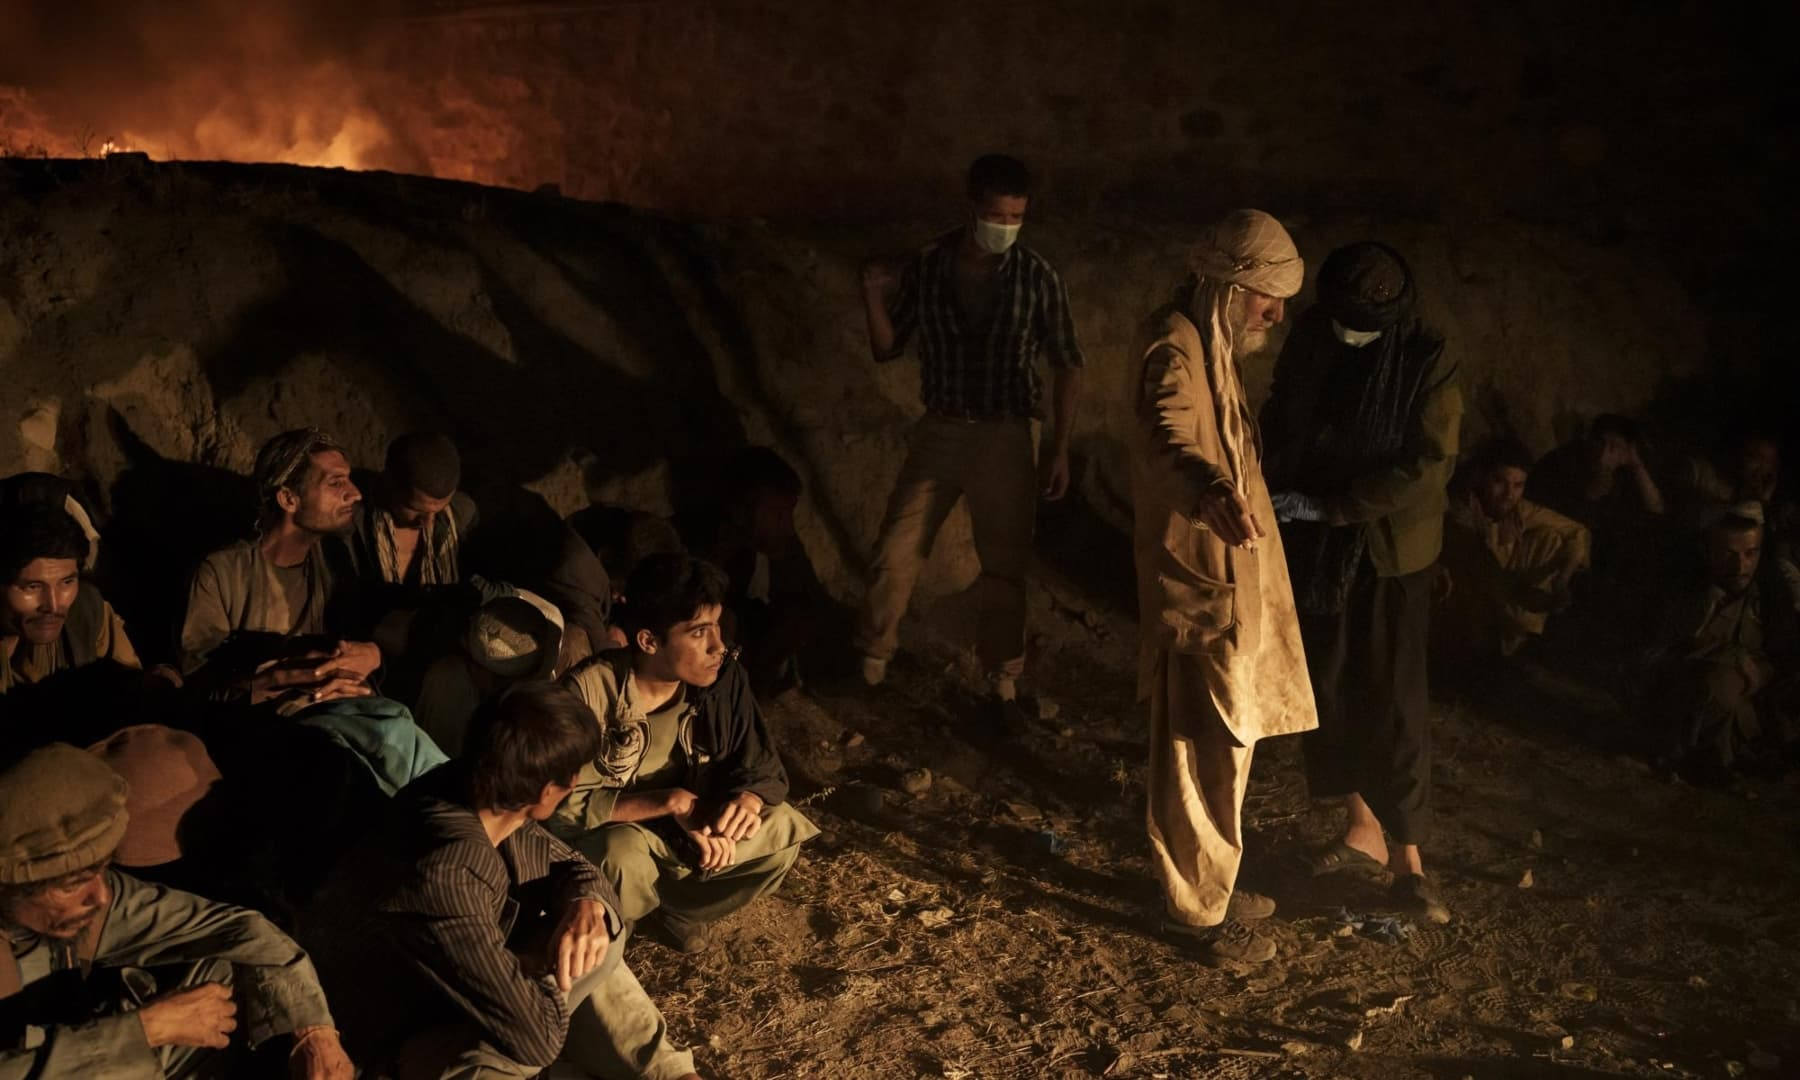 Drug users detained during a Taliban raid wait to be checked at a police station before being transferred to the Avicenna Medical Hospital for Drug Treatment in Kabul, Afghanistan, October 1, 2021. — AP